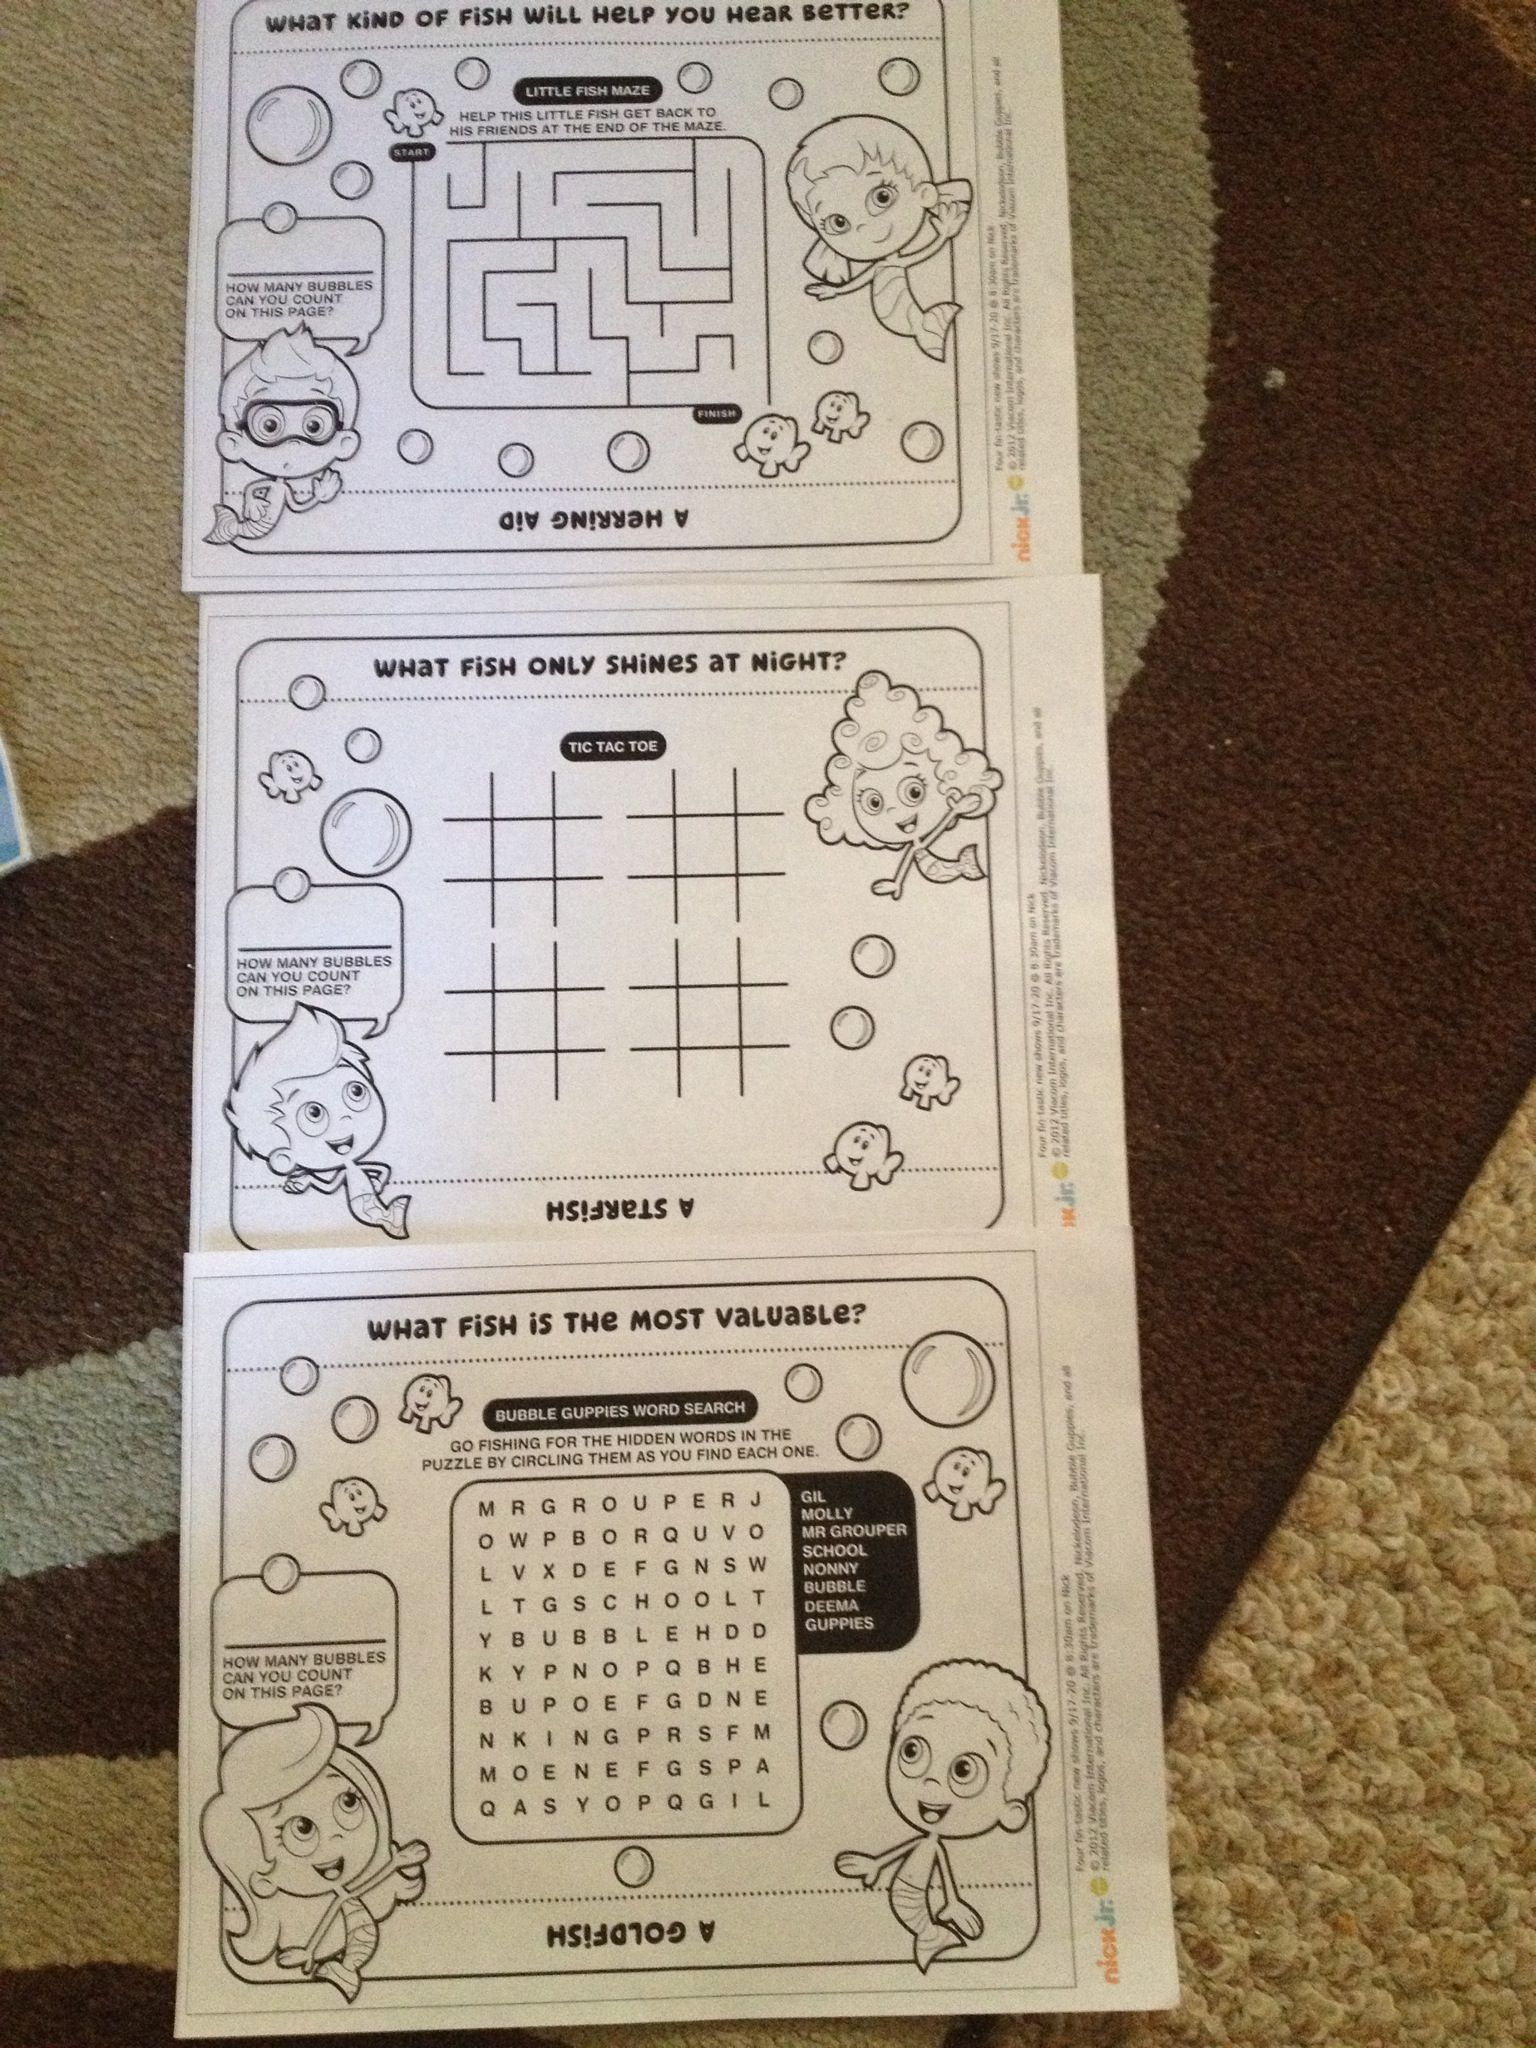 Bubble guppie fun placemats | Bubble guppies party ideas | Pinterest